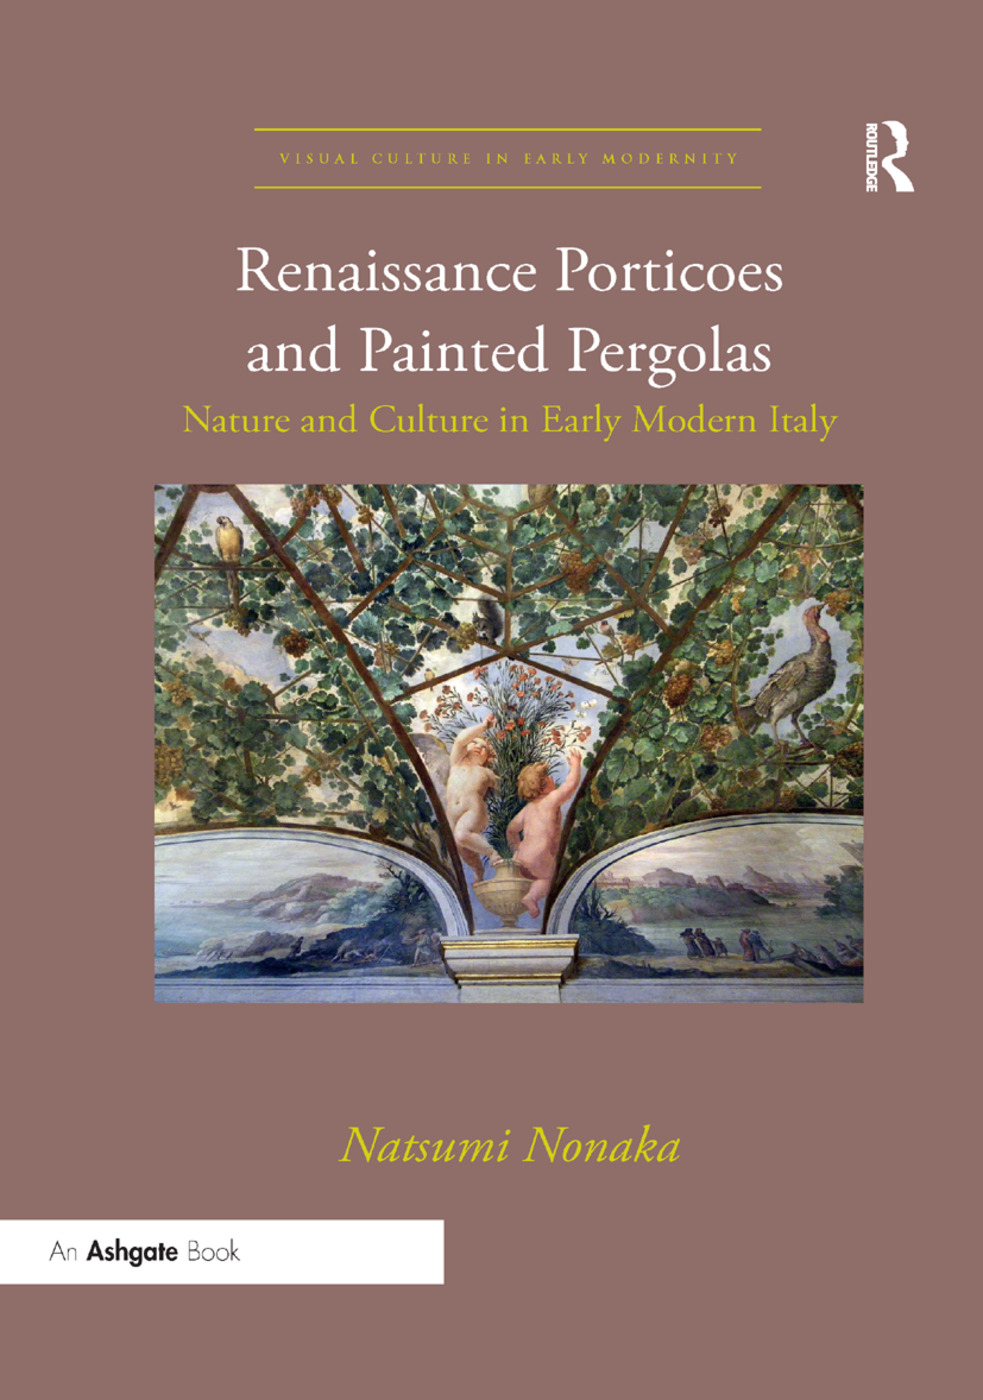 Renaissance Porticoes and Painted Pergolas: Nature and Culture in Early Modern Italy book cover